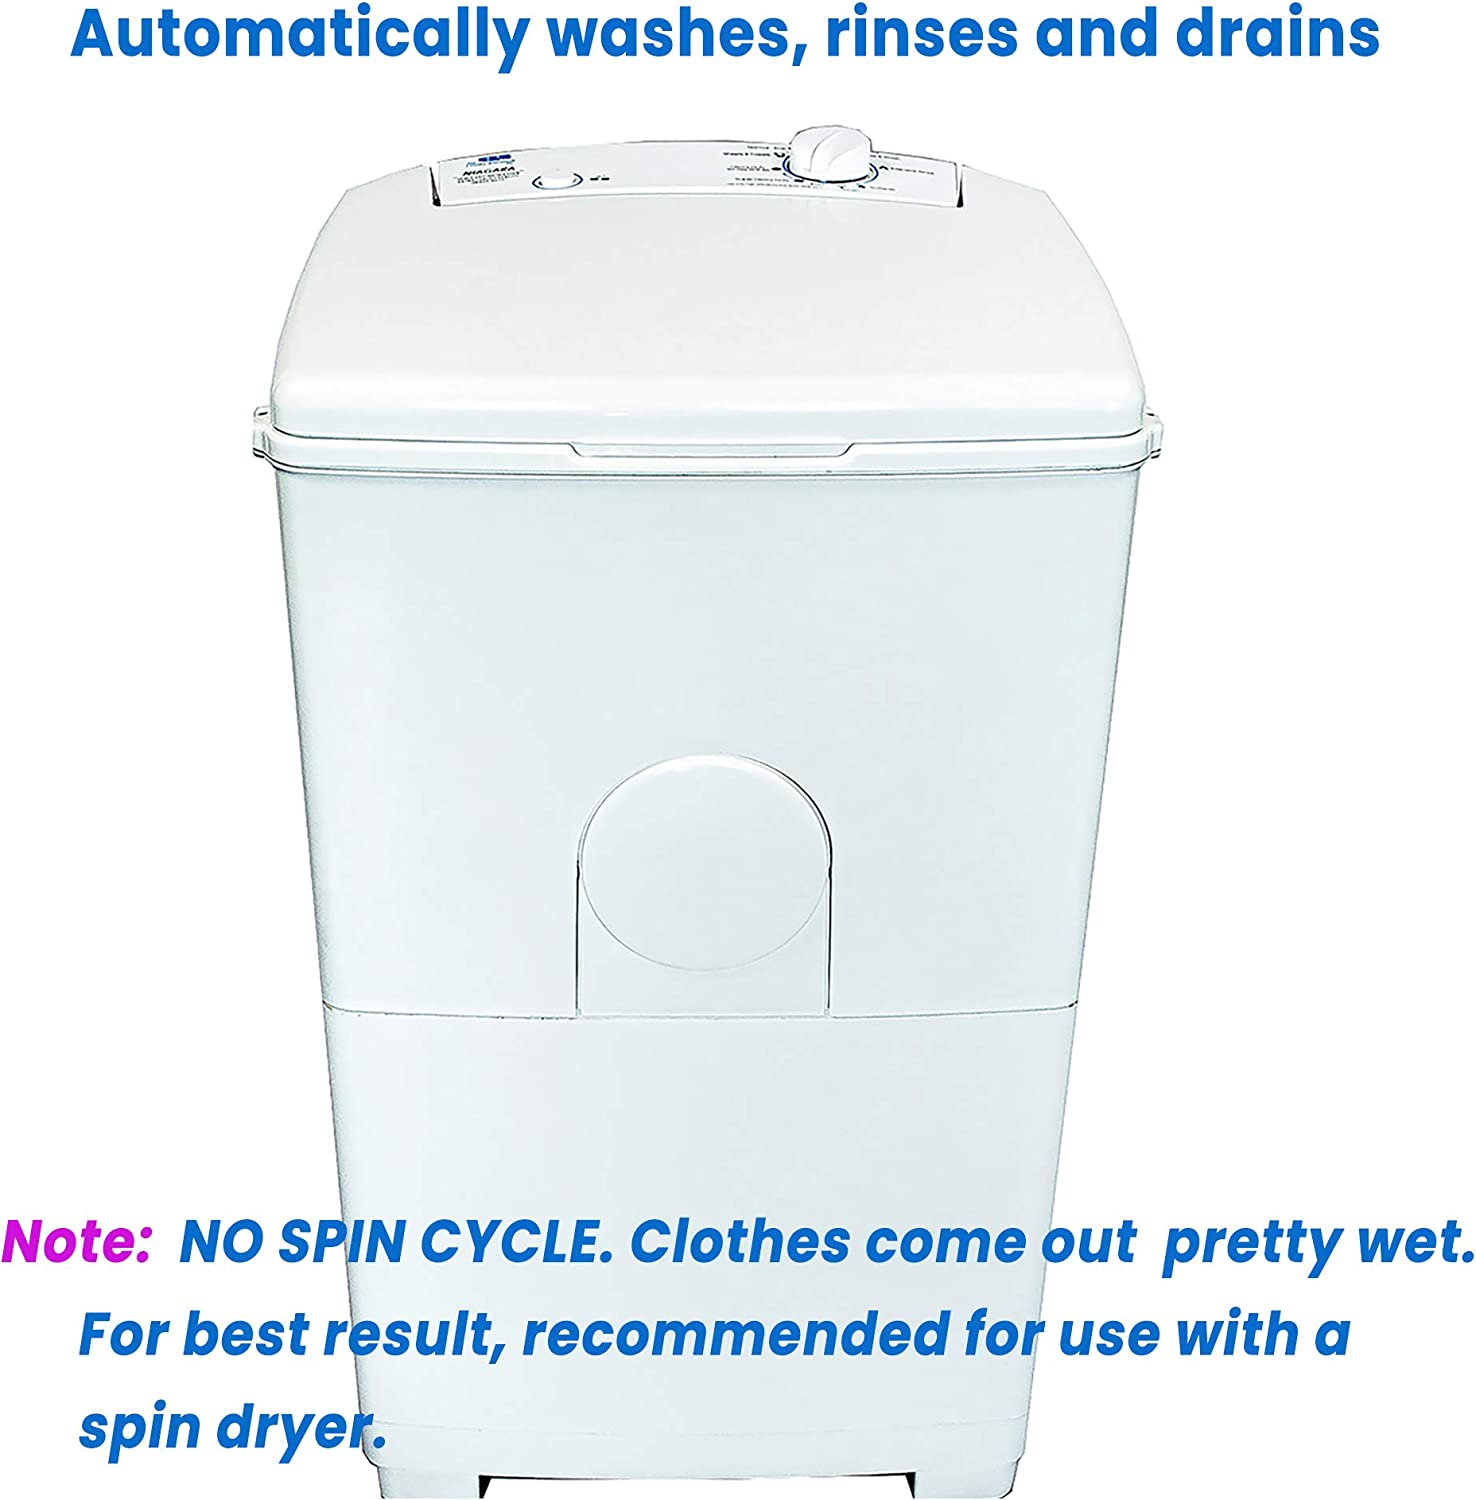 KUPPET Portable Spin Dryer 1500 RPM 110V//8.8lbs(Can only be dried not washed)